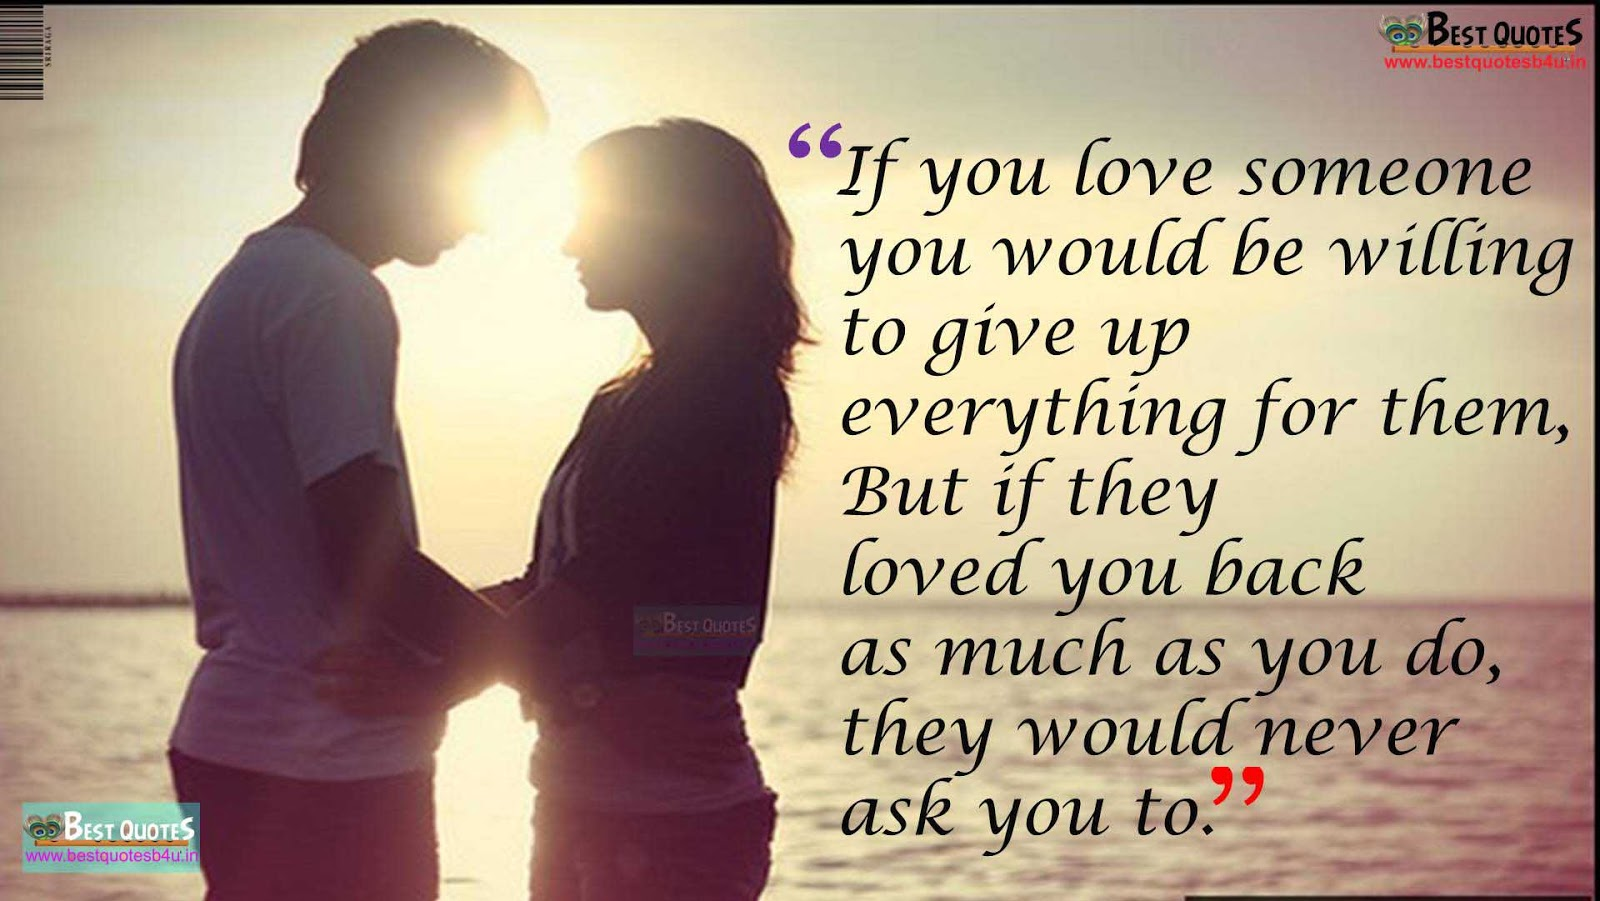 Heart Touching Love Quotes Glamorous Heart Touching Love Quotes 62  Like Share Follow